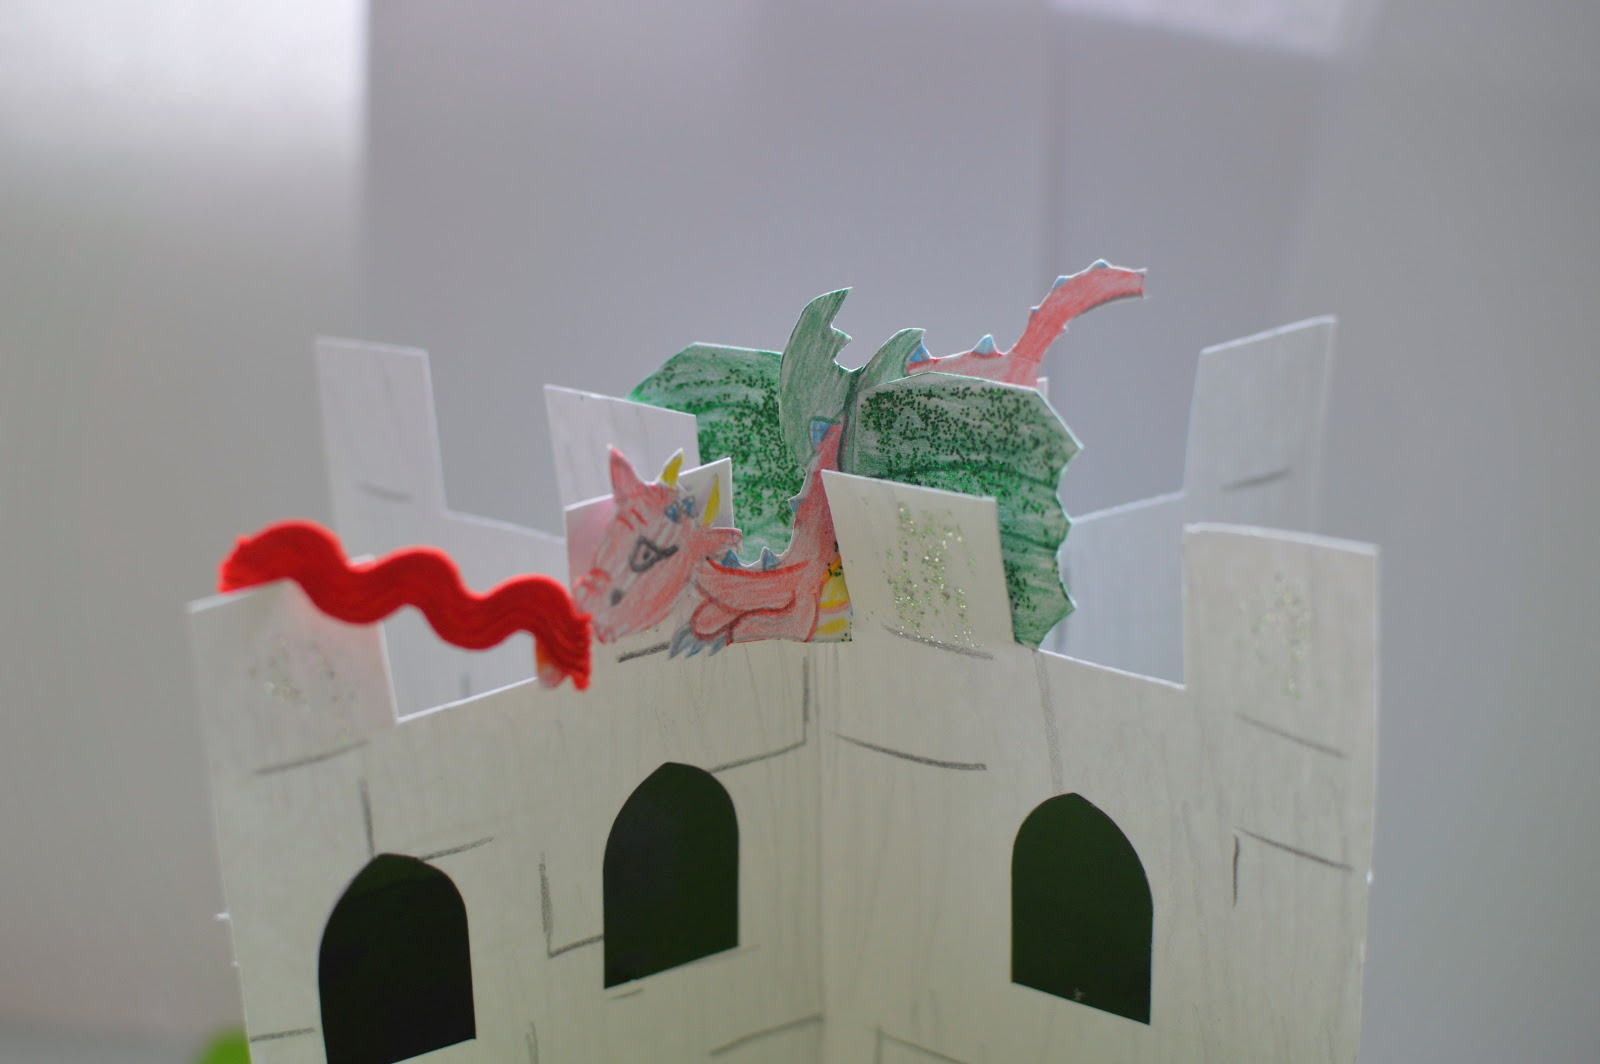 , Craft:  Make a Card Castle Play Scene with Dragon, Knight and Princess